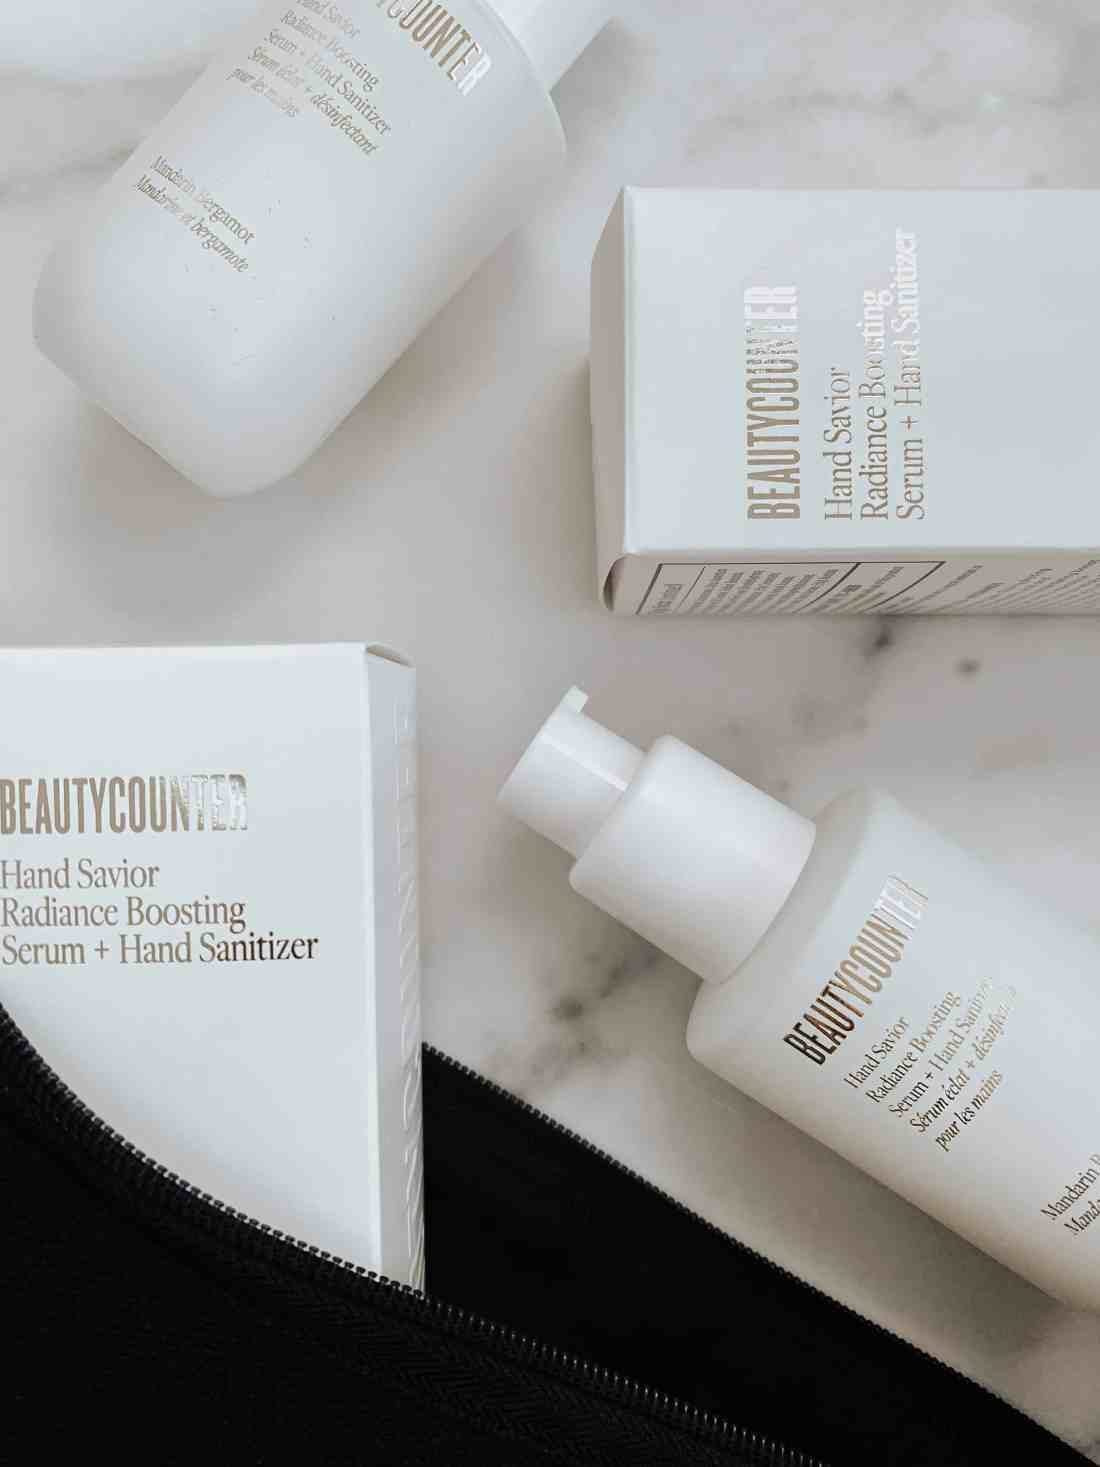 Two sets of Beautycounter's Hand Savior Radiance Serum + Hand Sanitizer laid out on a white marble surface.